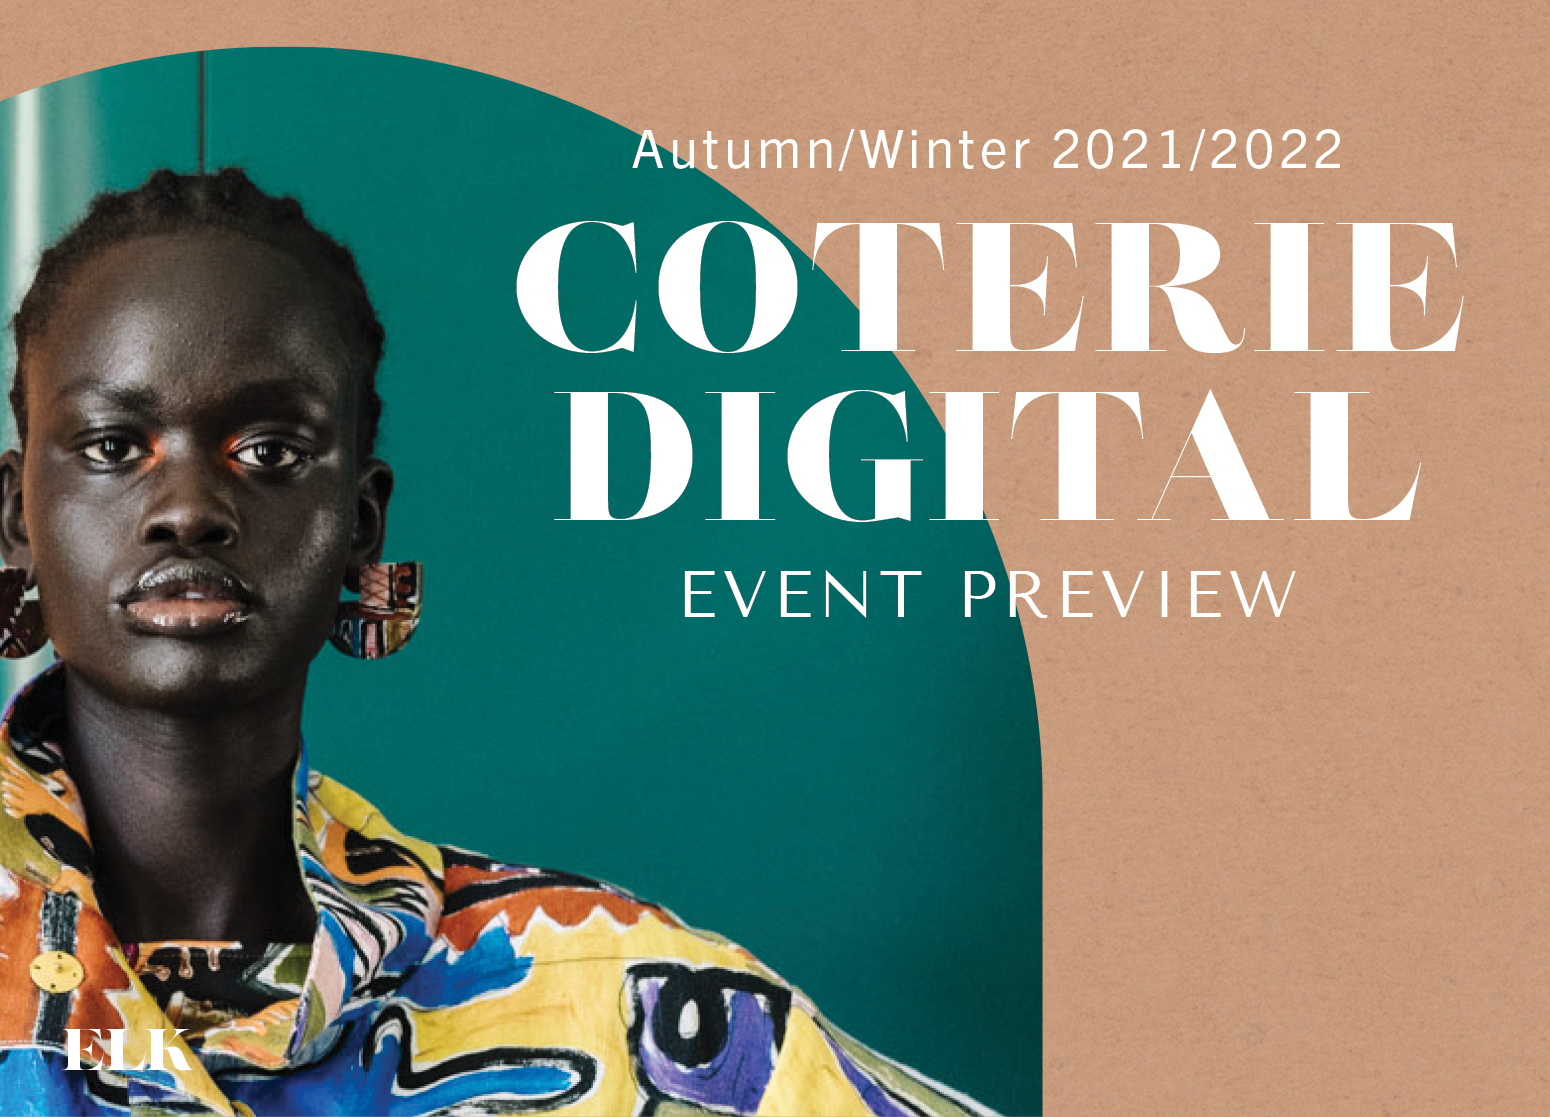 COTERIE Event Preview